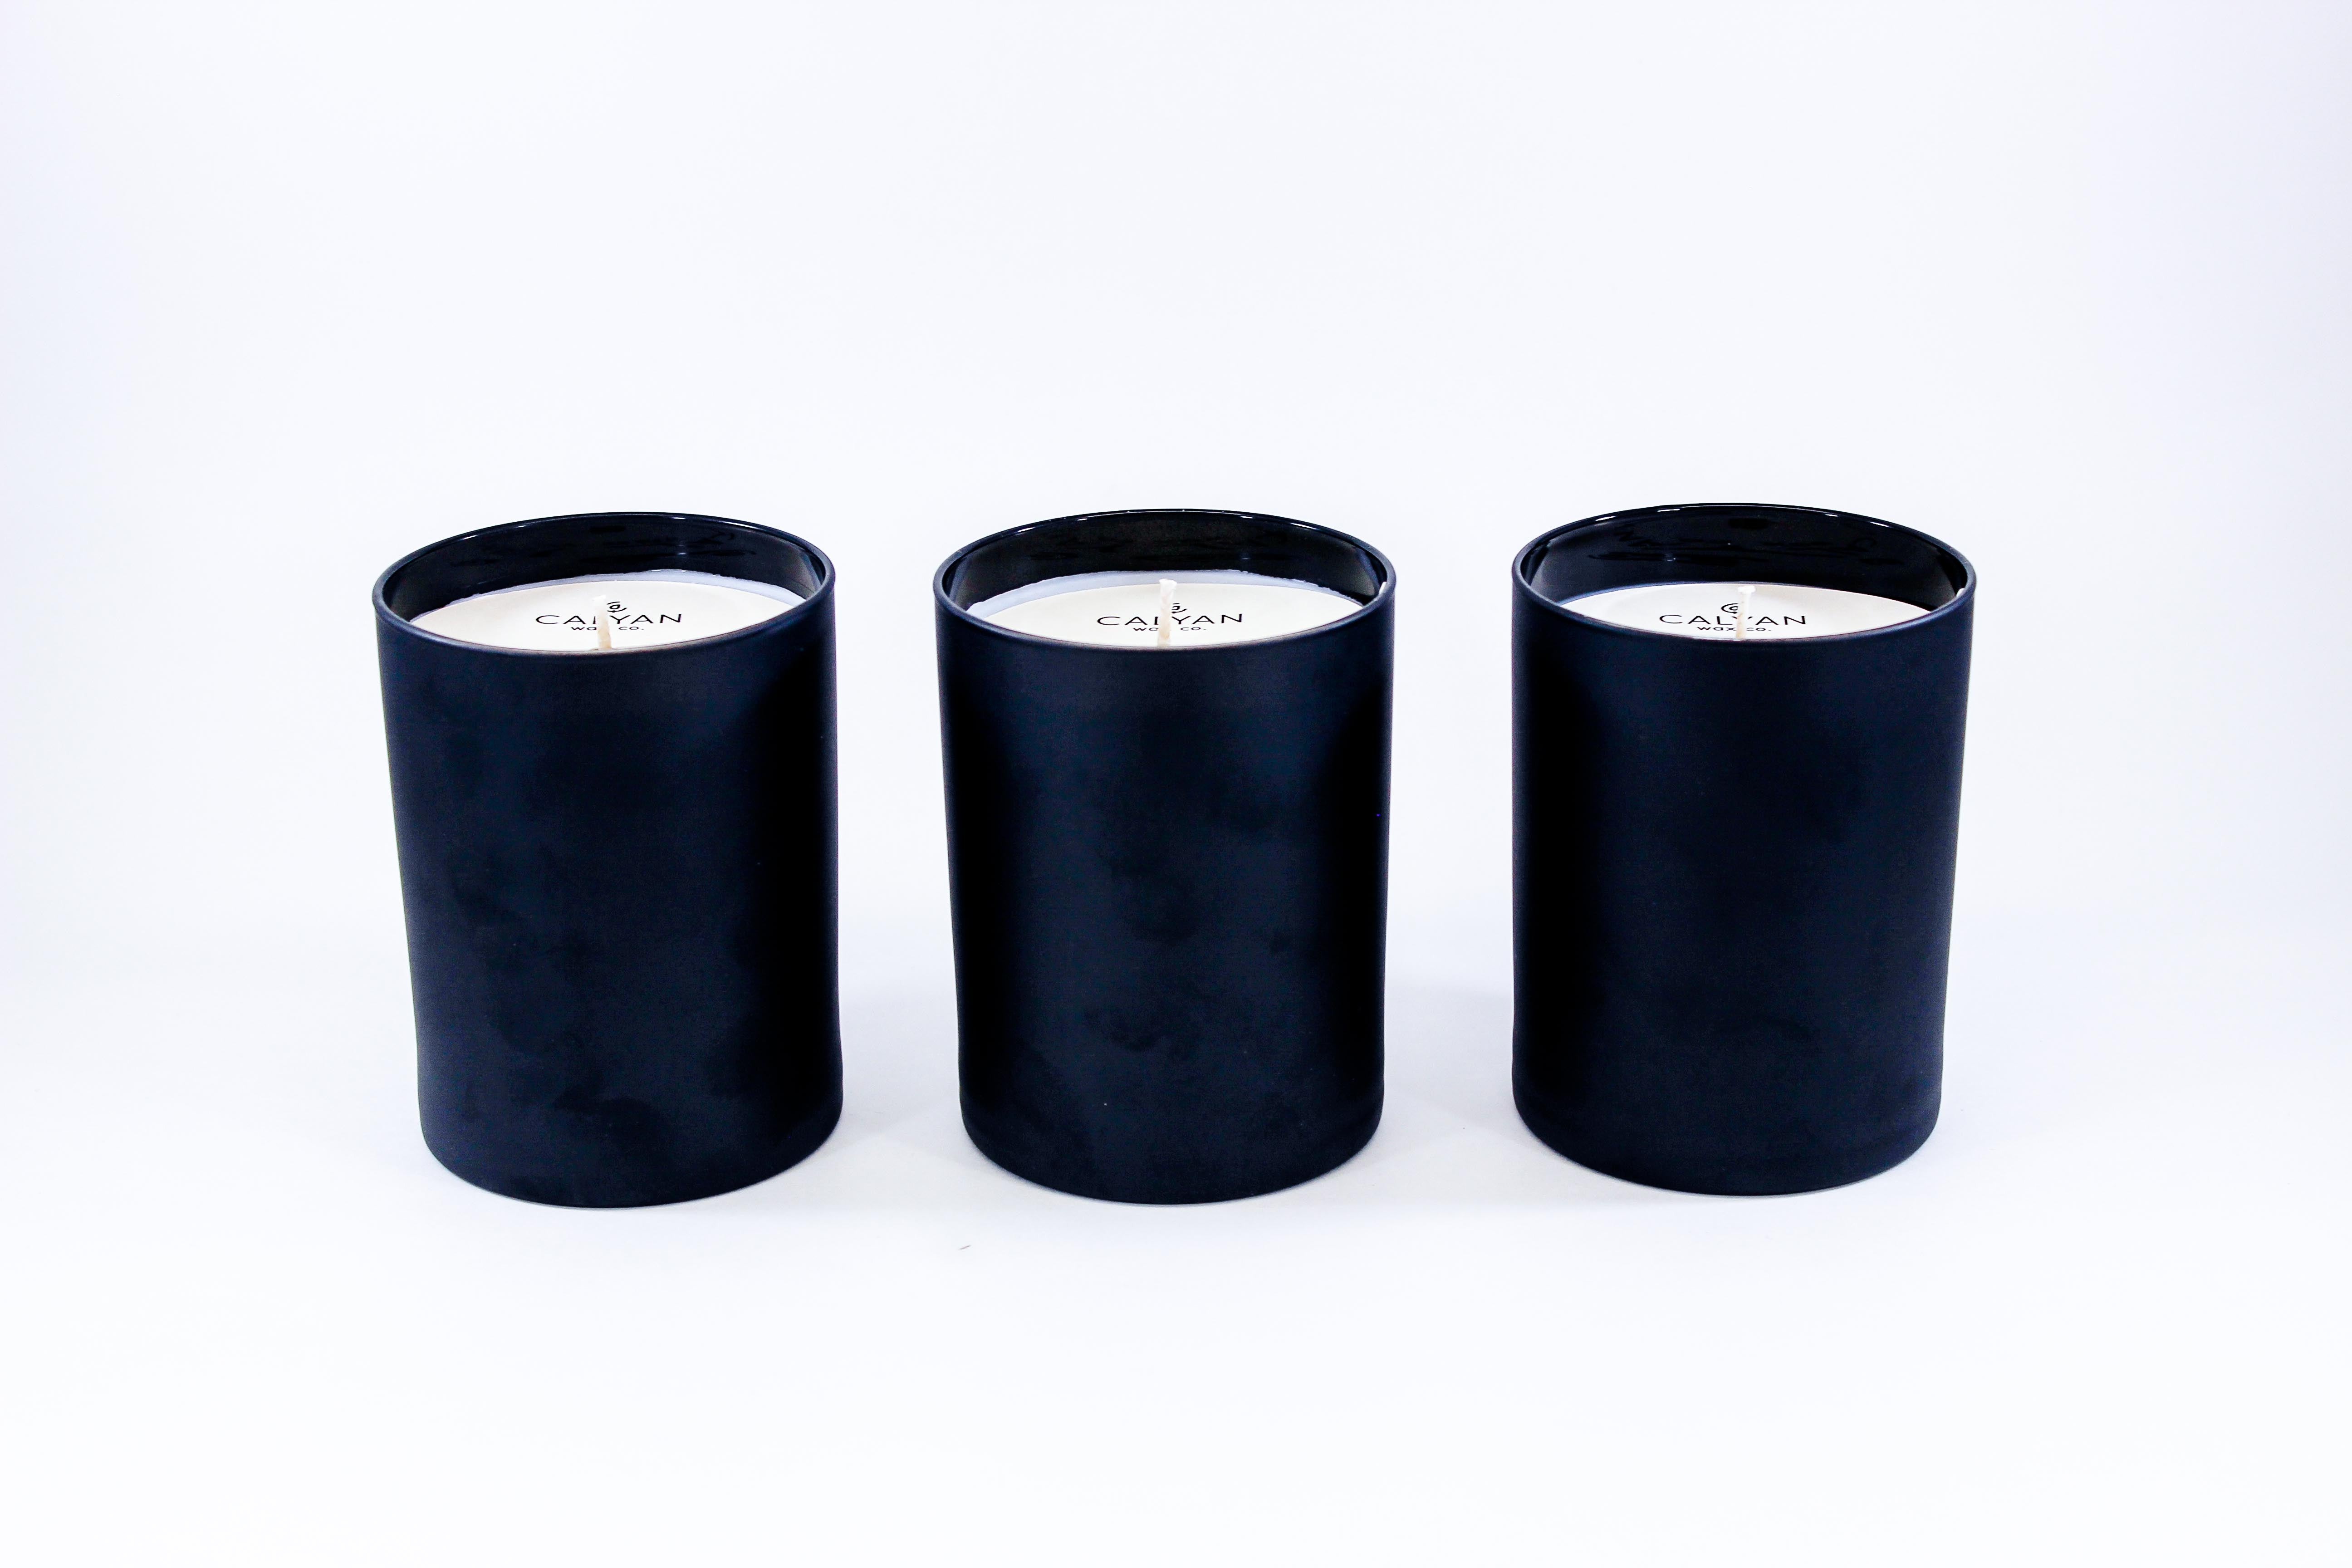 Black Tumbler Collection | Set of 3